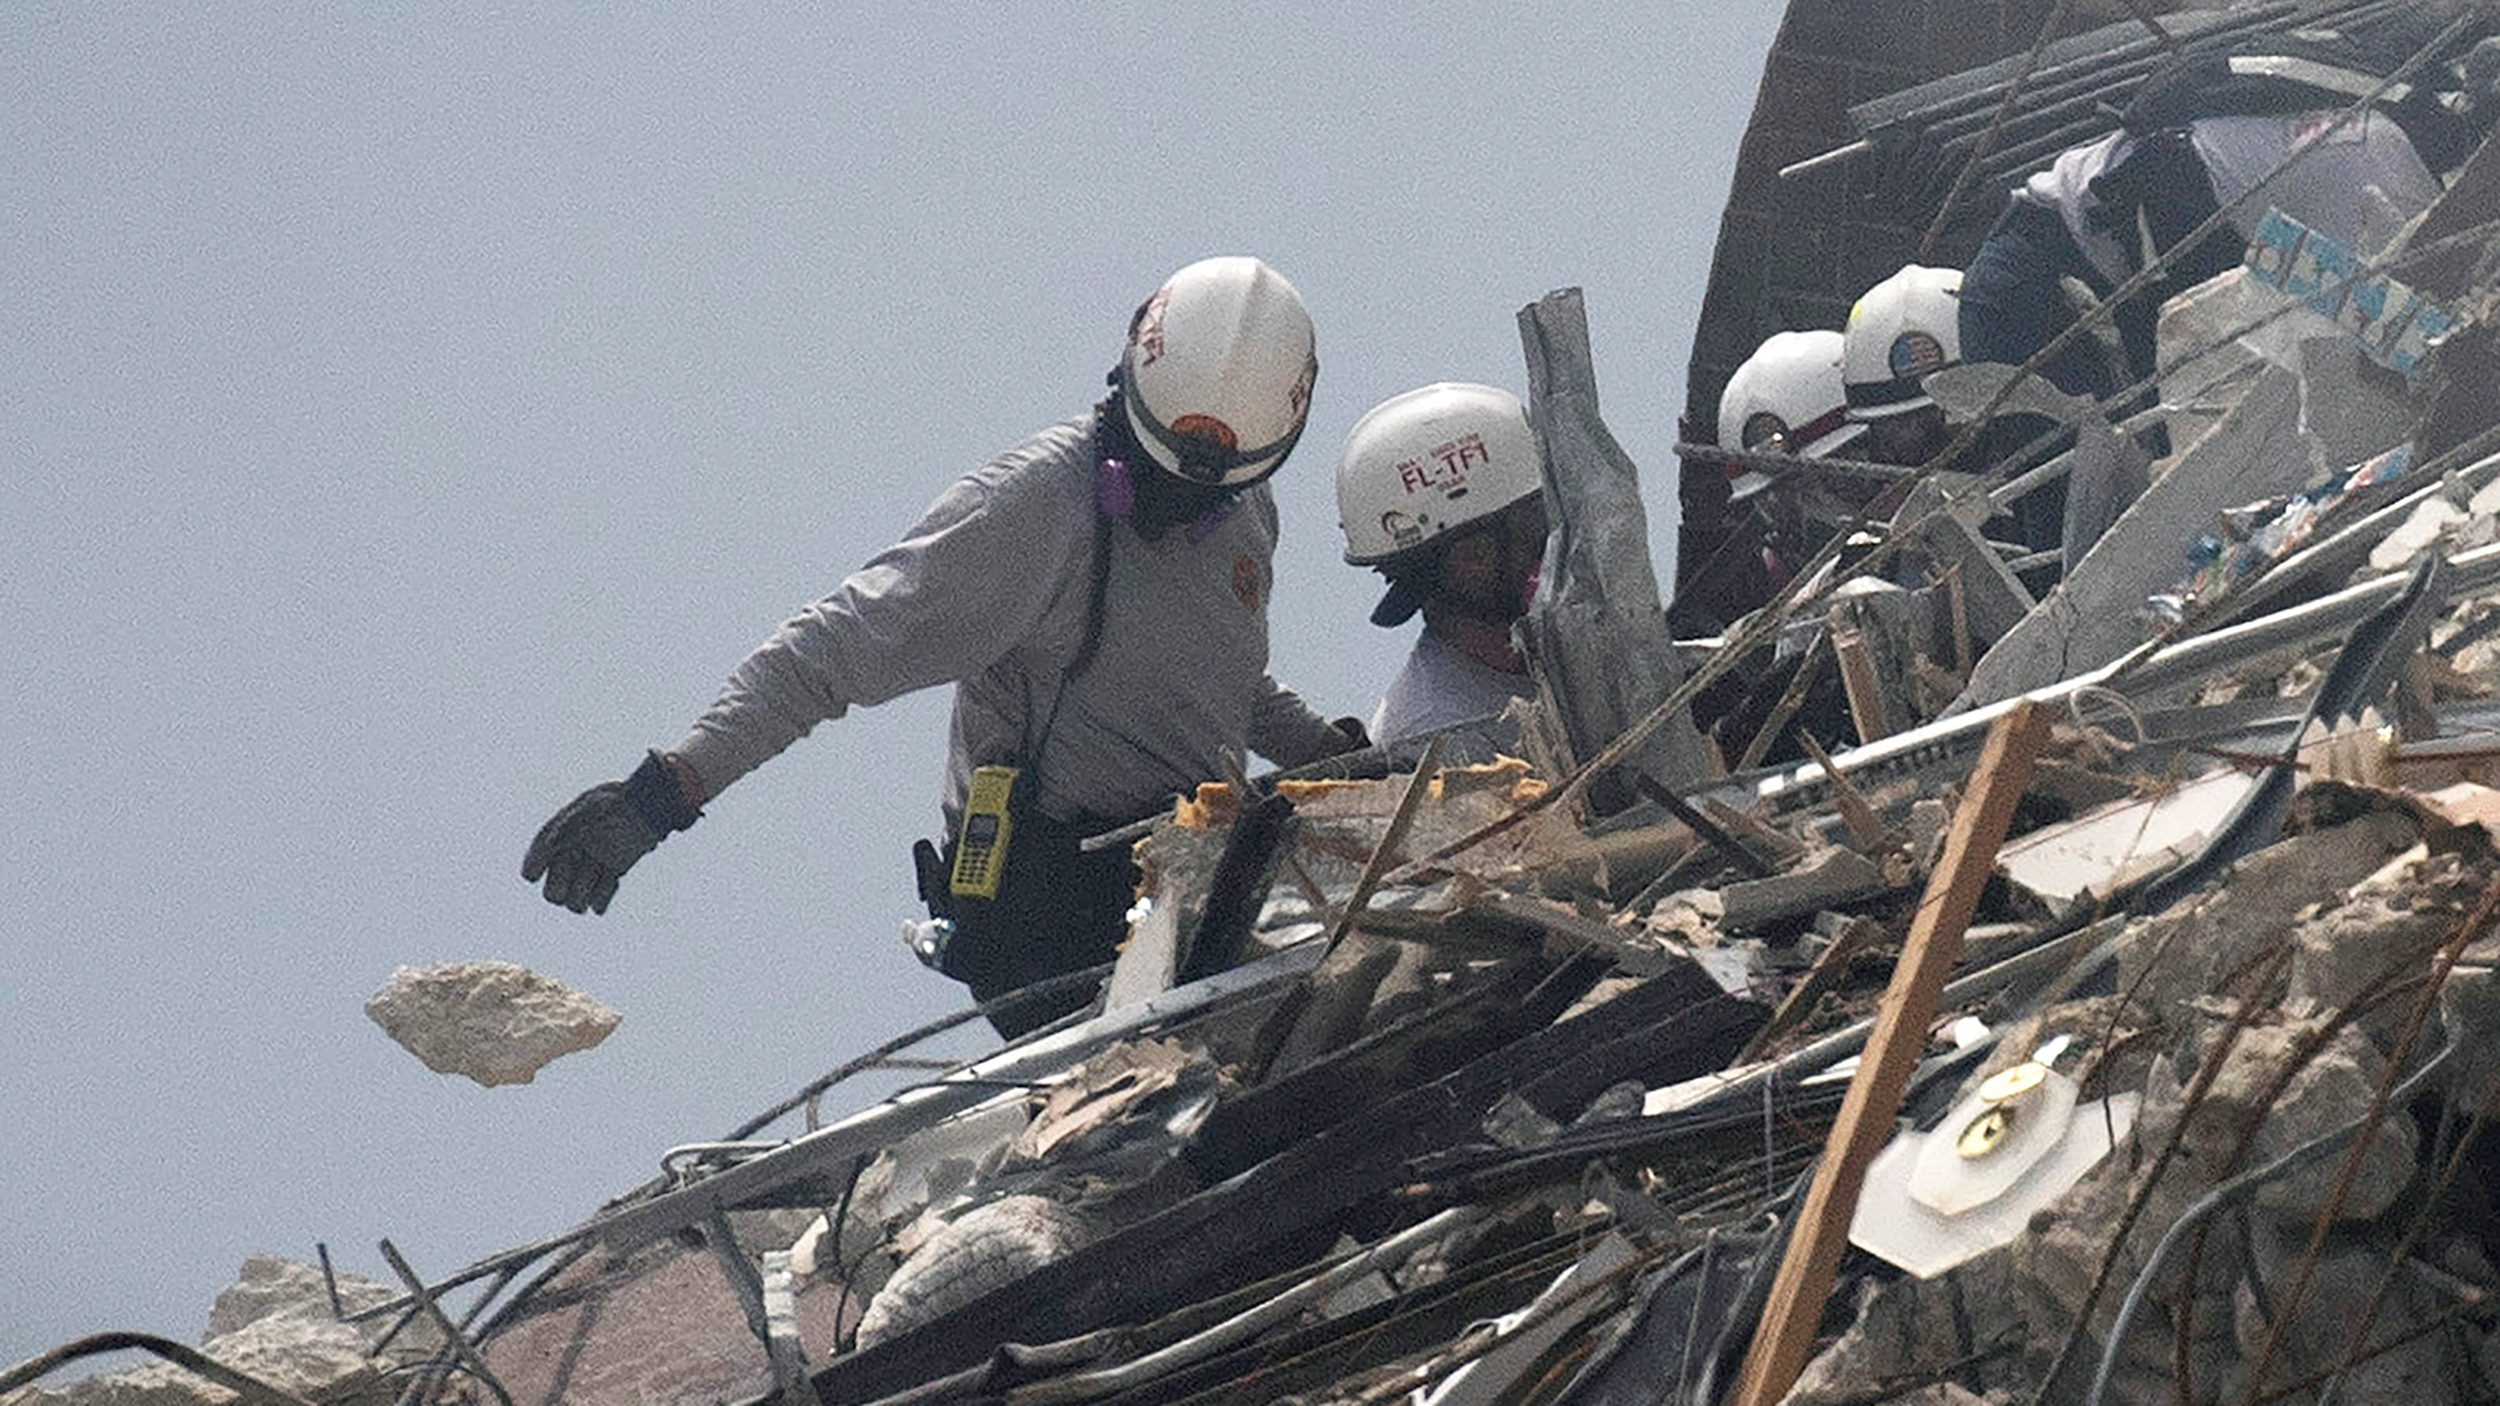 These are the challenges rescuers at the collapsed building in Surfside are facing